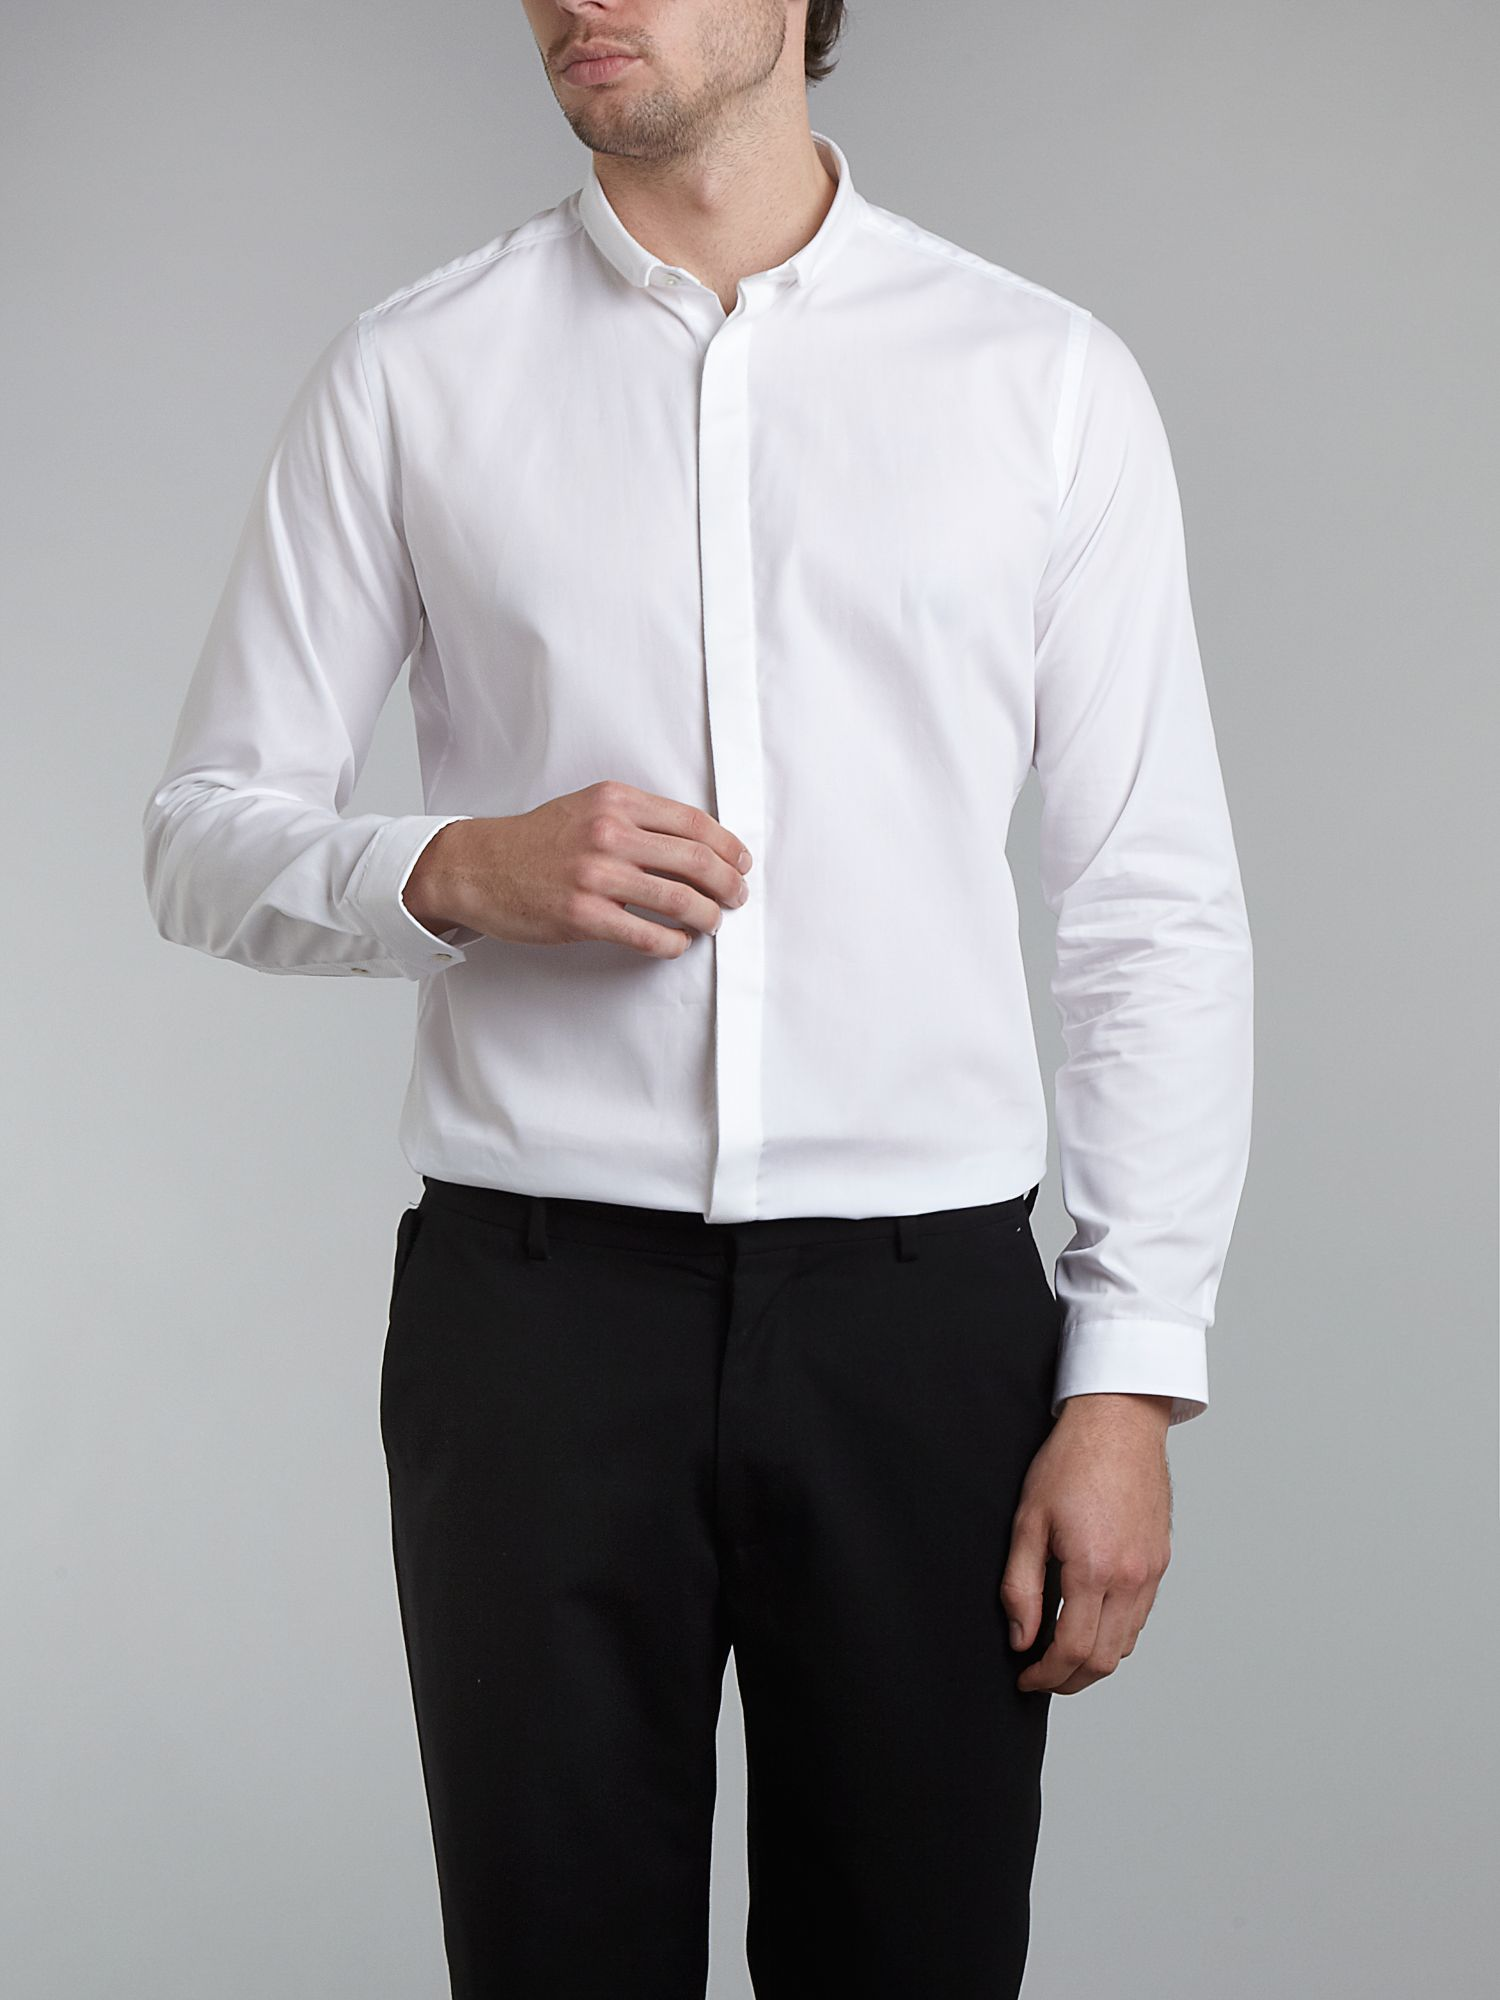 Long-sleeve mixed fabric formal shirt